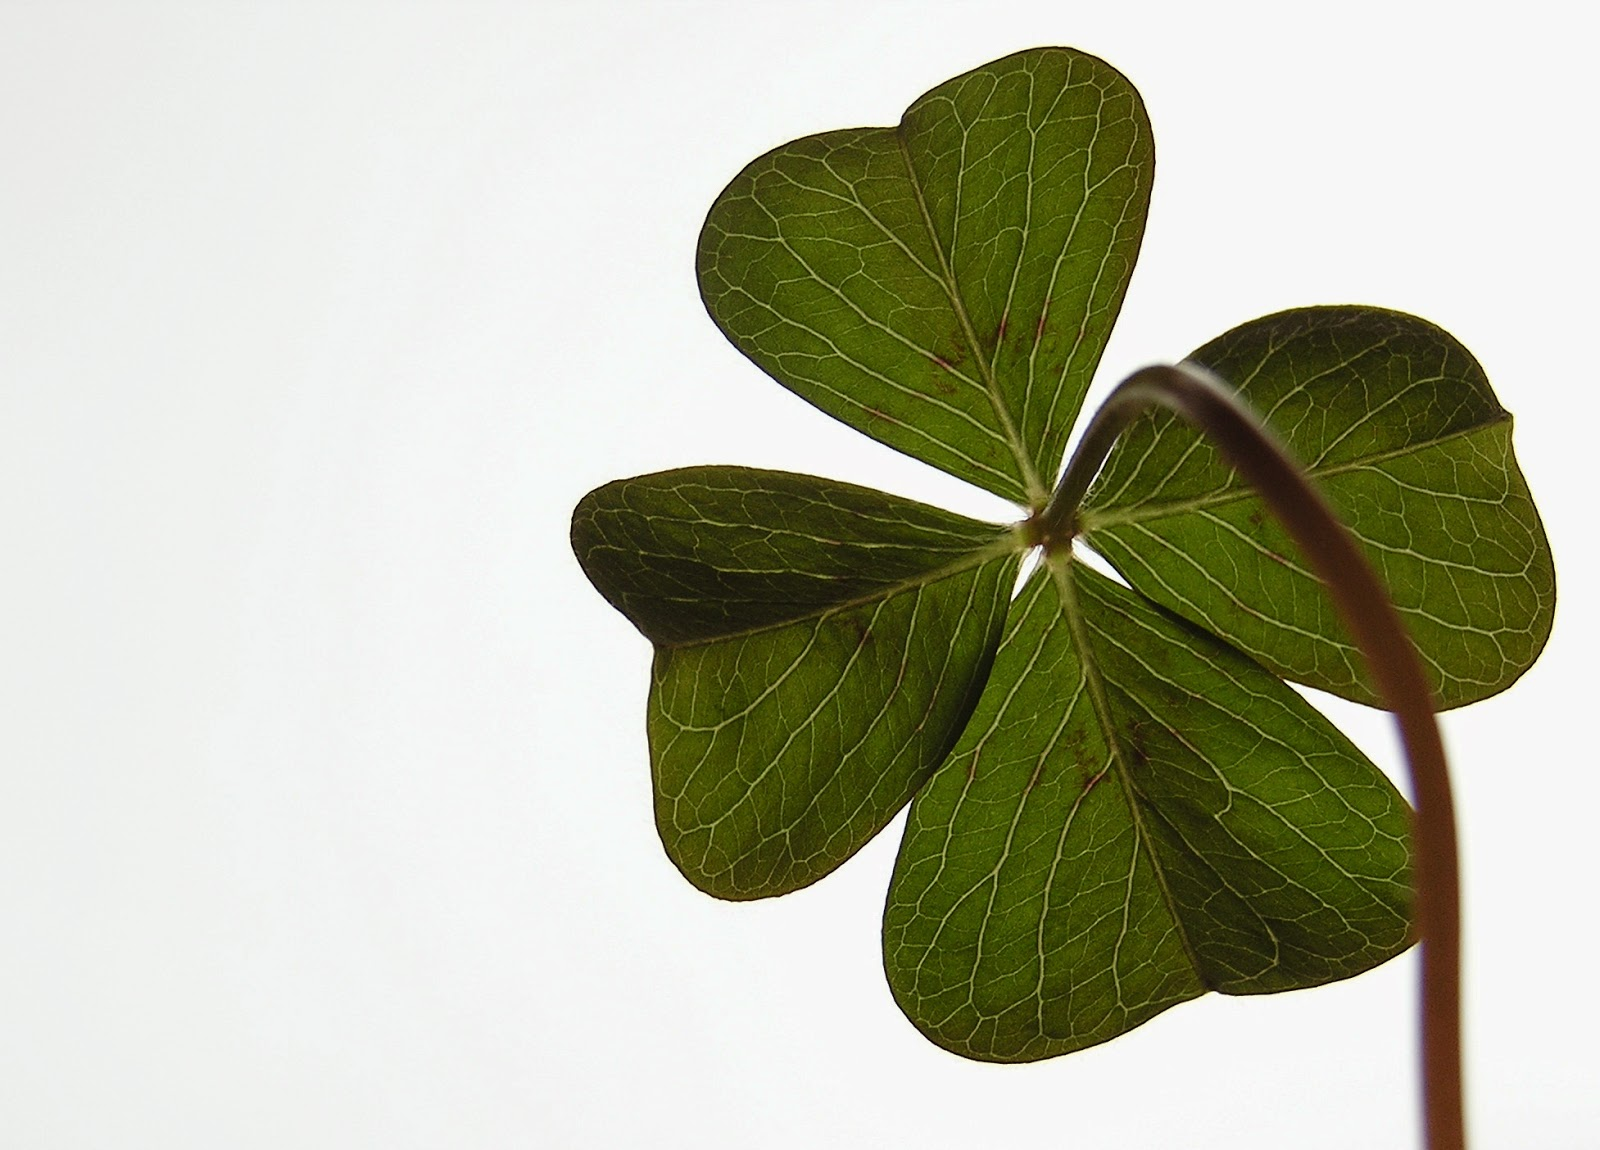 shamrock images for whatsapp